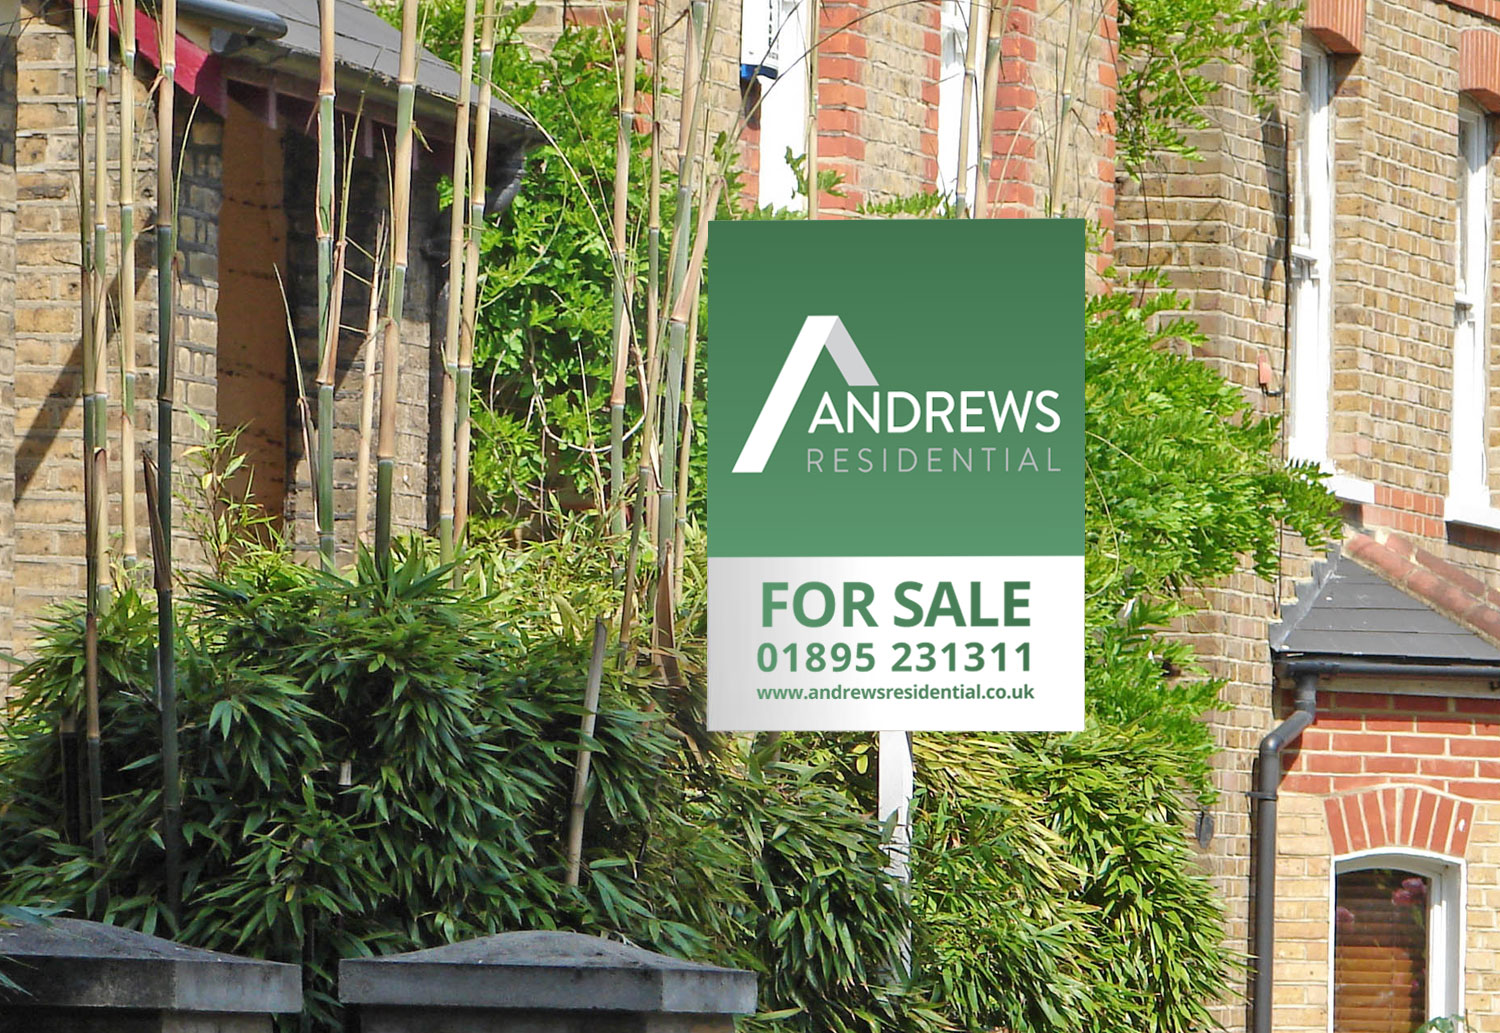 Andrews Residential For Sale board